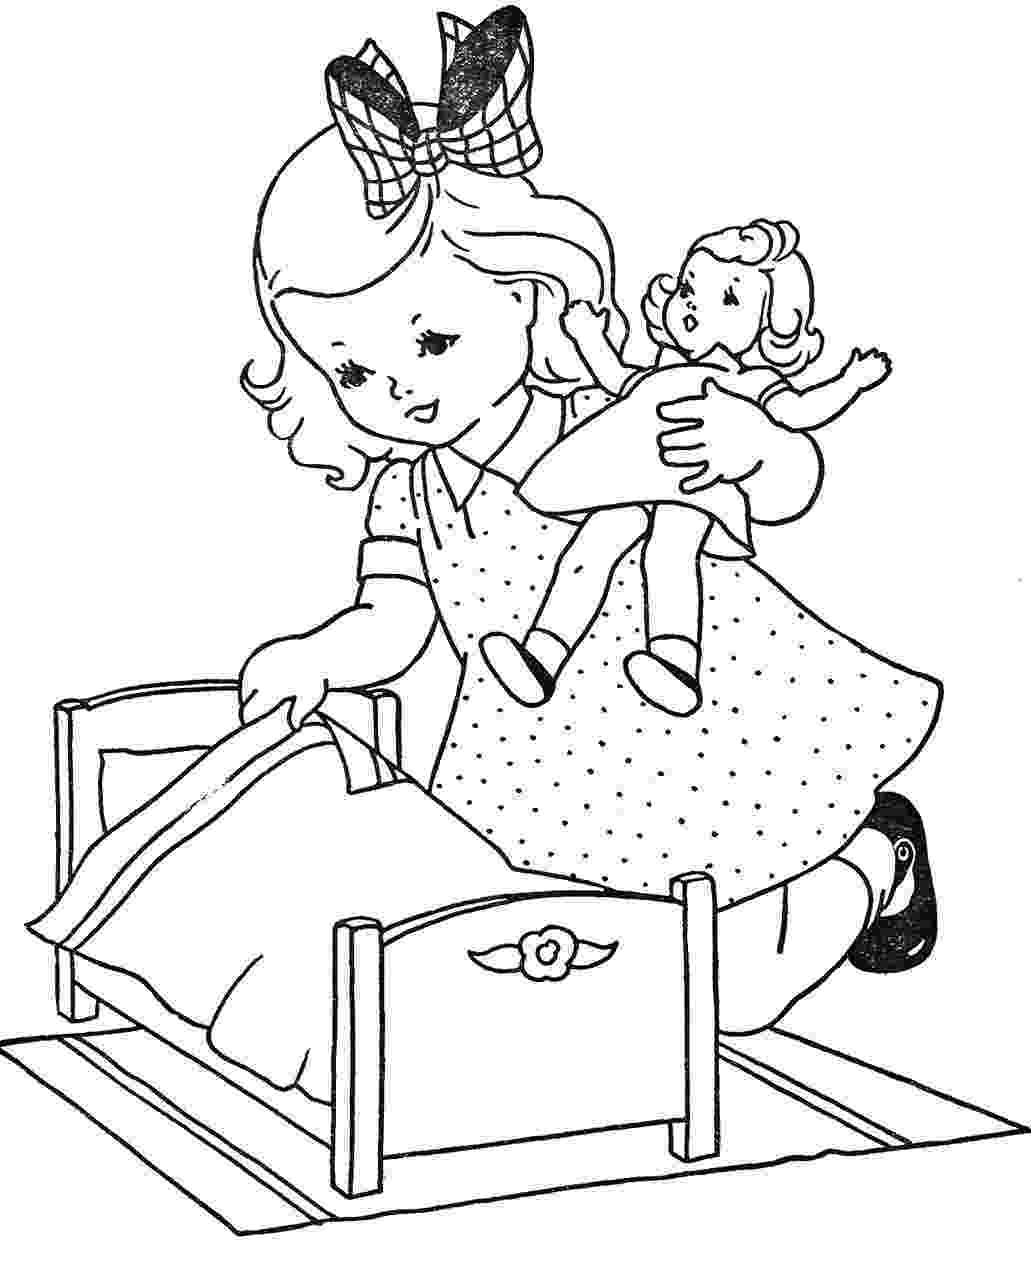 girl pictures to color and print coloring pages for girls best coloring pages for kids color and print pictures girl to